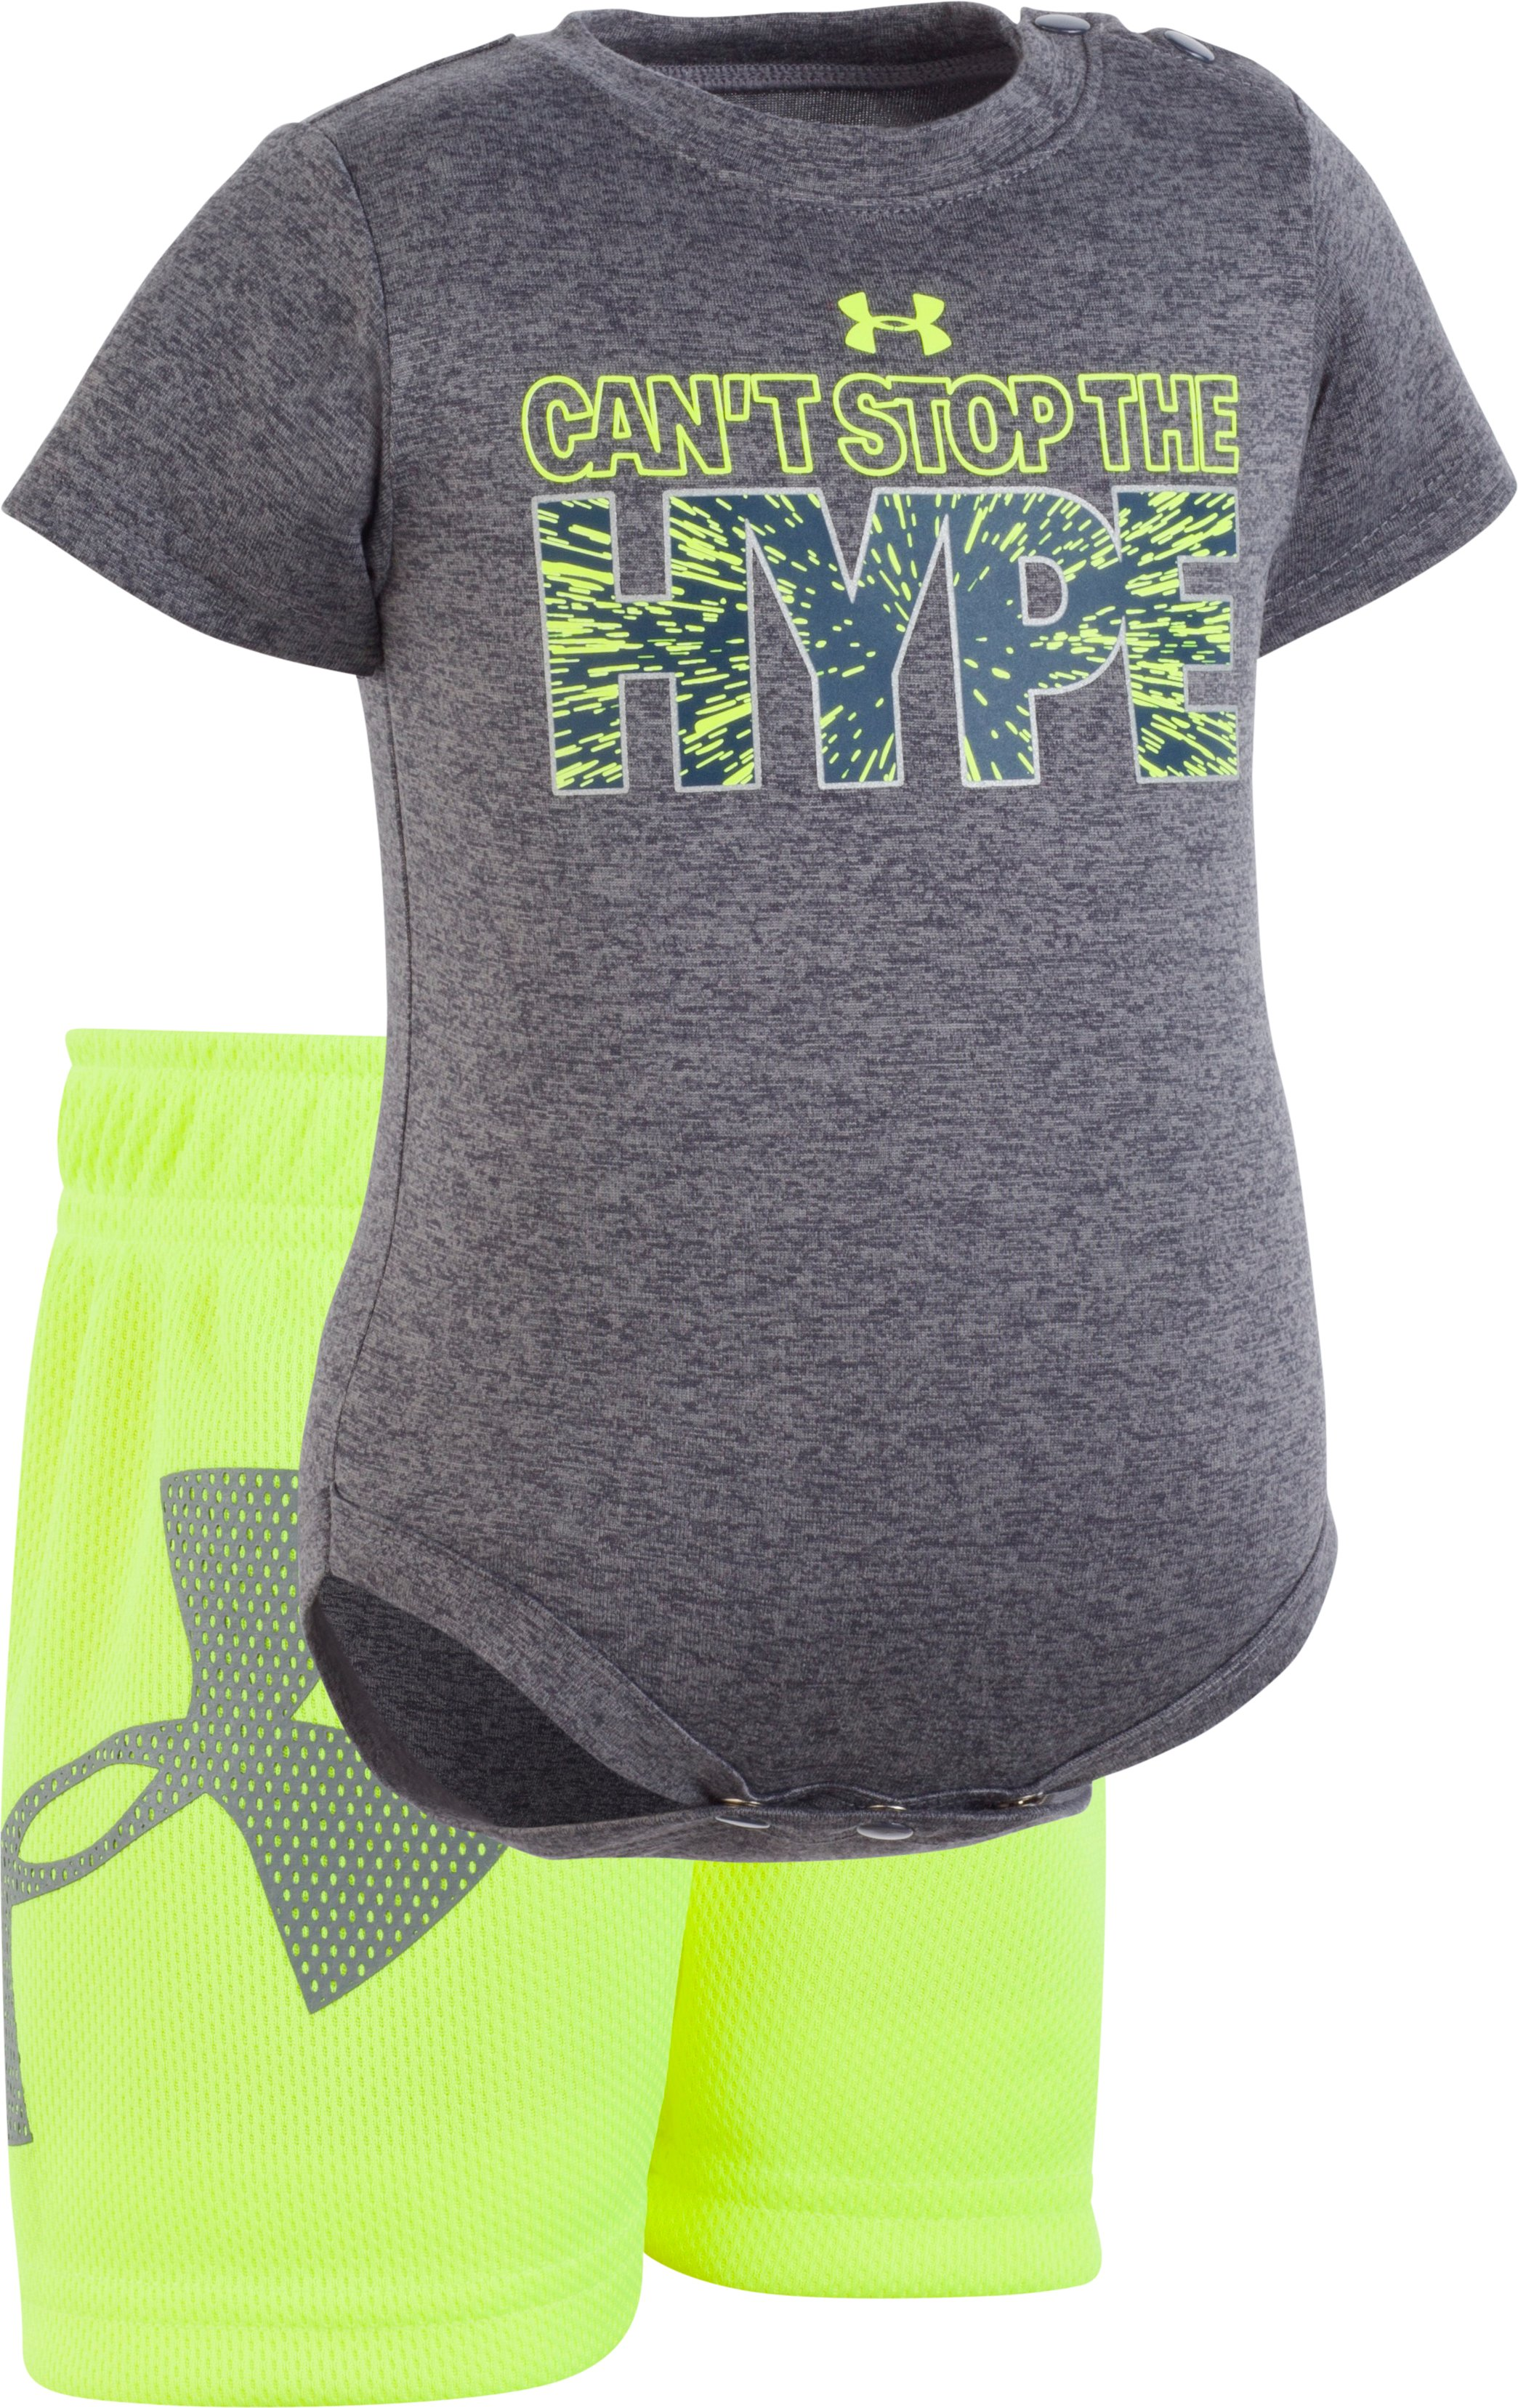 Boys' Newborn UA Can't Stop The Hype Set , Charcoal Medium Heather, zoomed